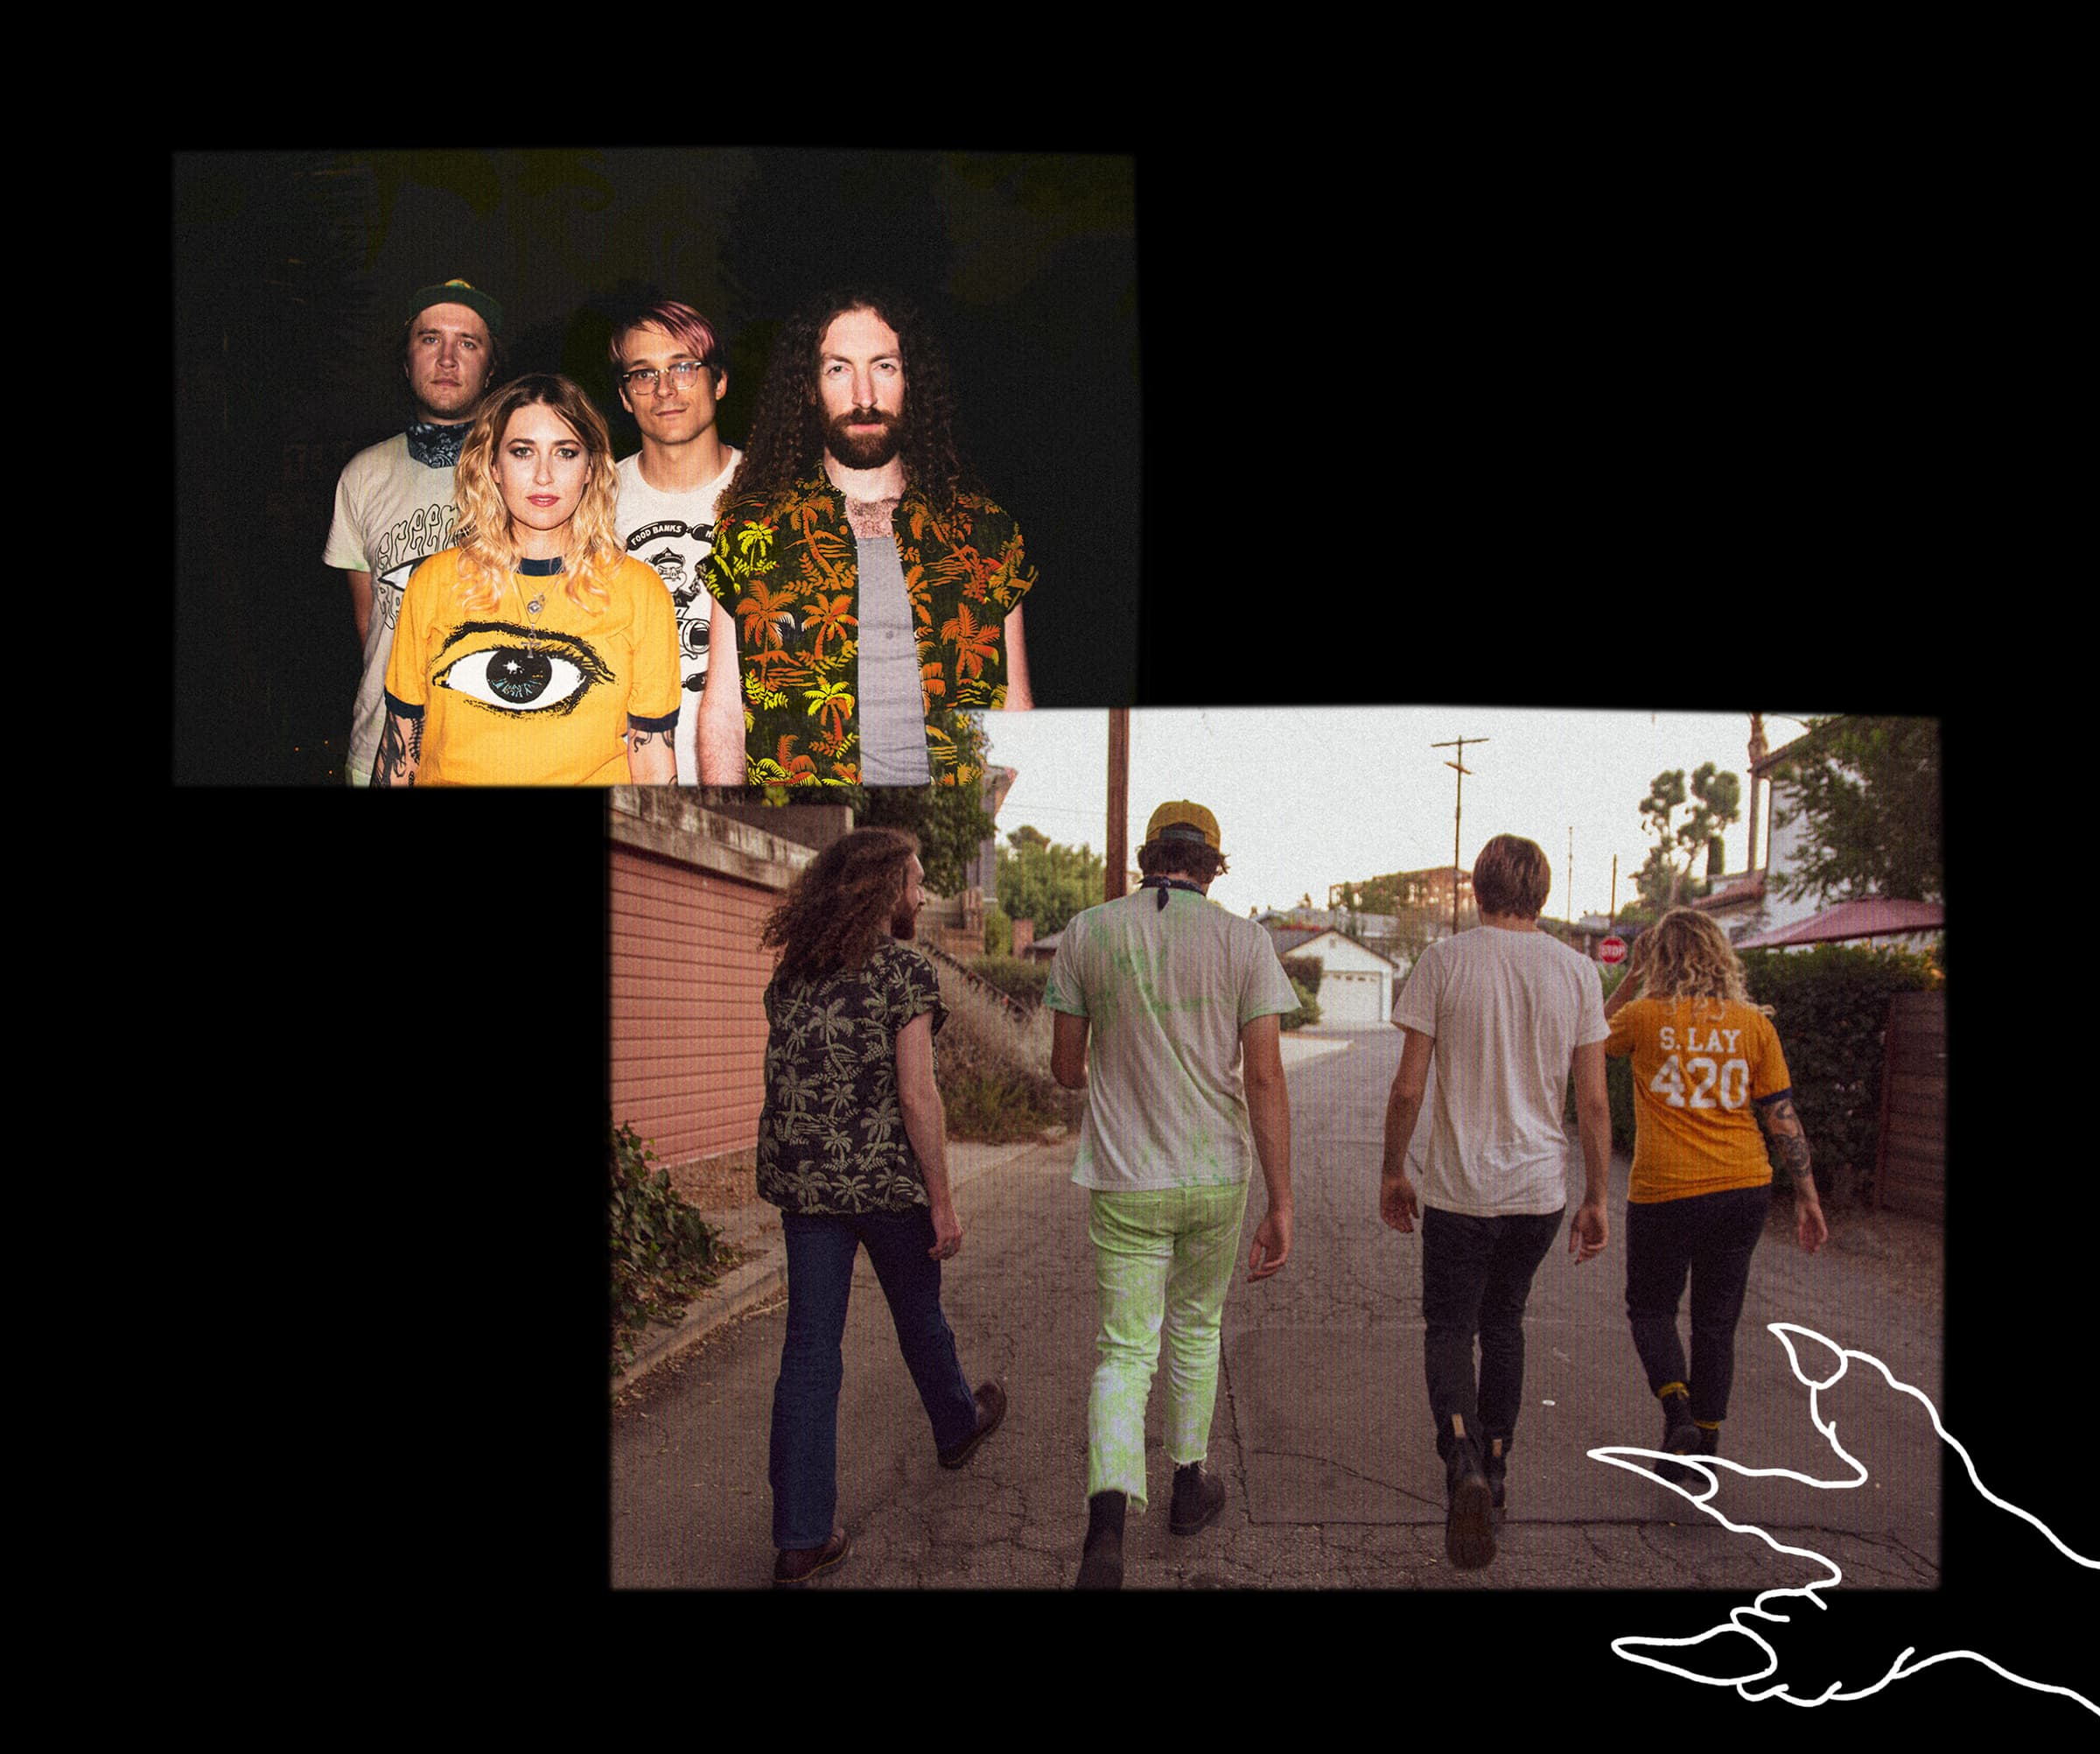 Two photos of the band: one facing the camera and one with them walking away. A hand drawn lizard foot illustration included.